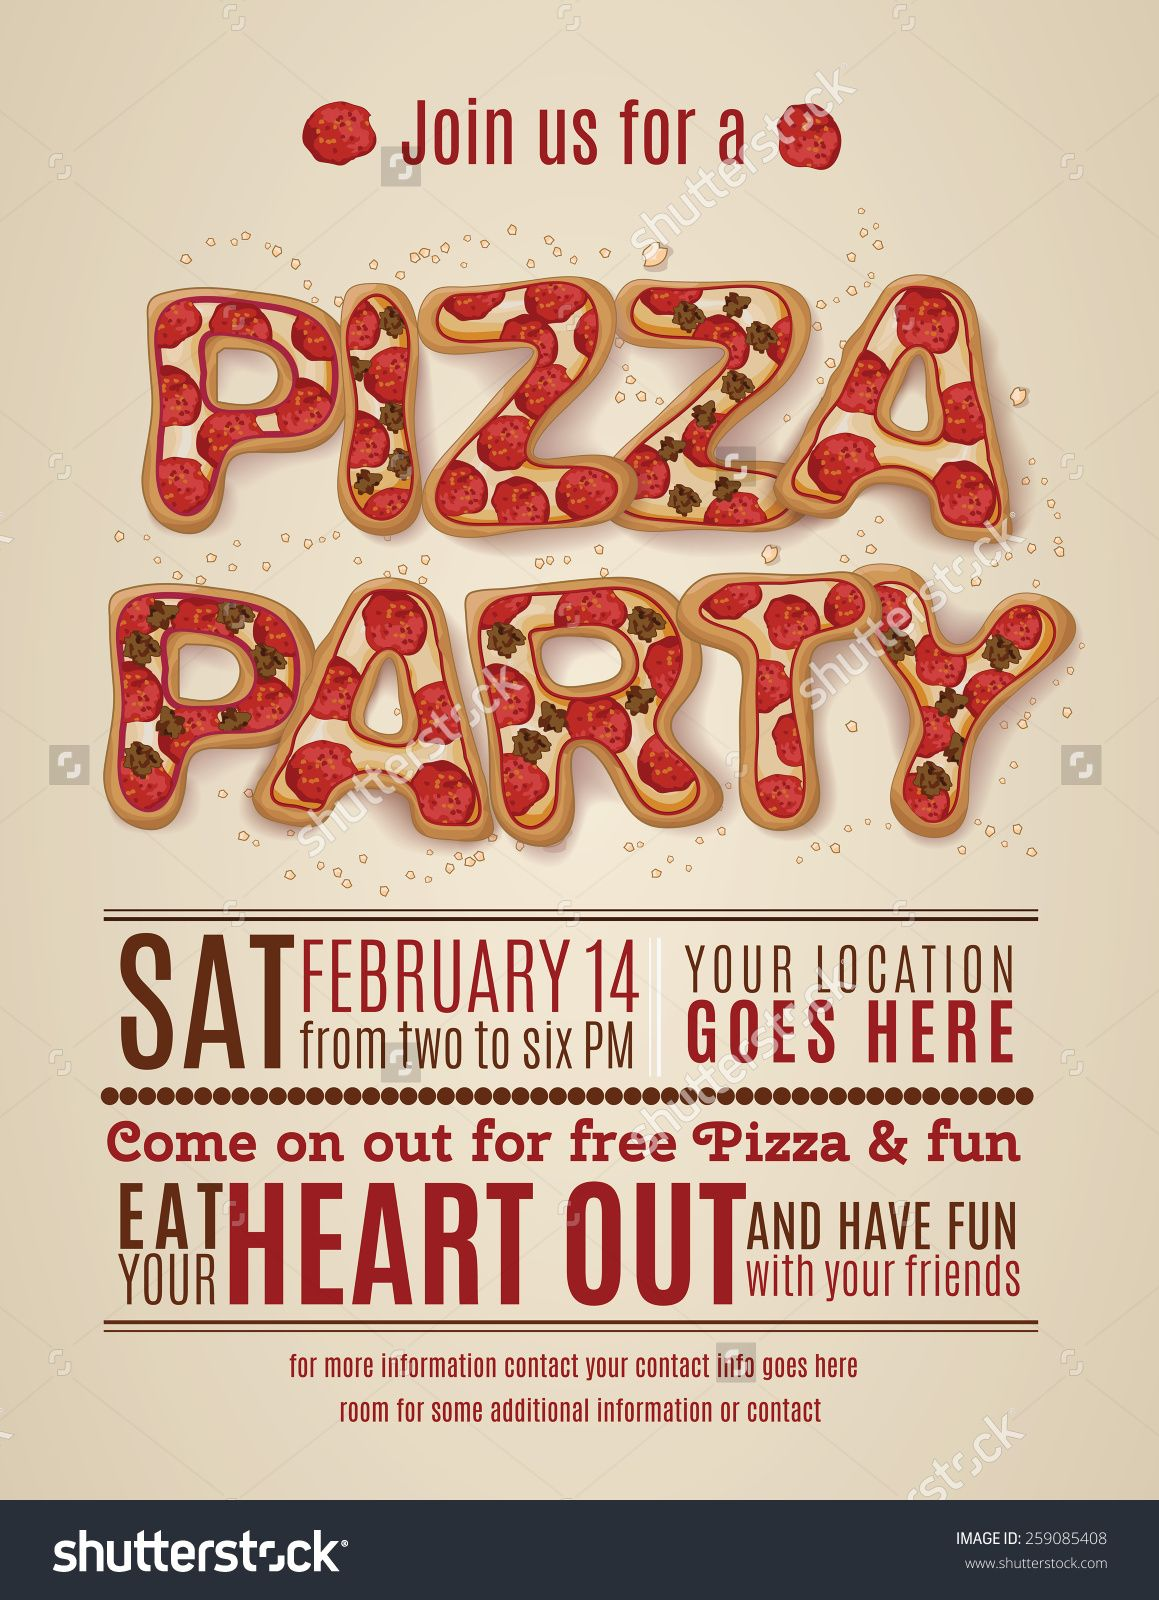 Pizza Party Invitation Template Free Invitation Templates Design - Party invitation template: club party invitation template